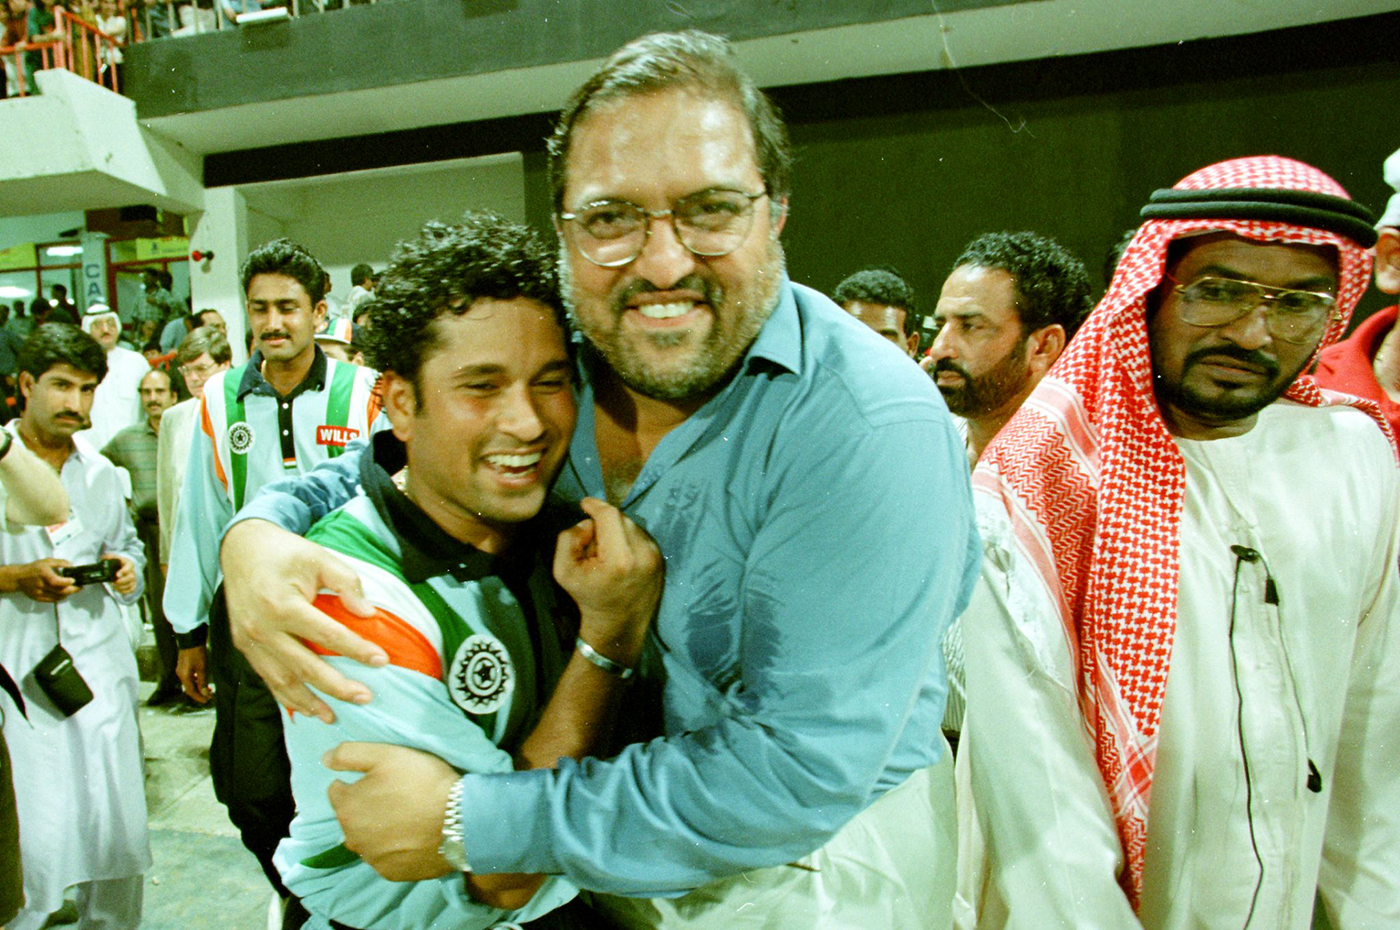 Mark Mascarenhas hugs a sweaty and tired Tendulkar at the end of the tournament